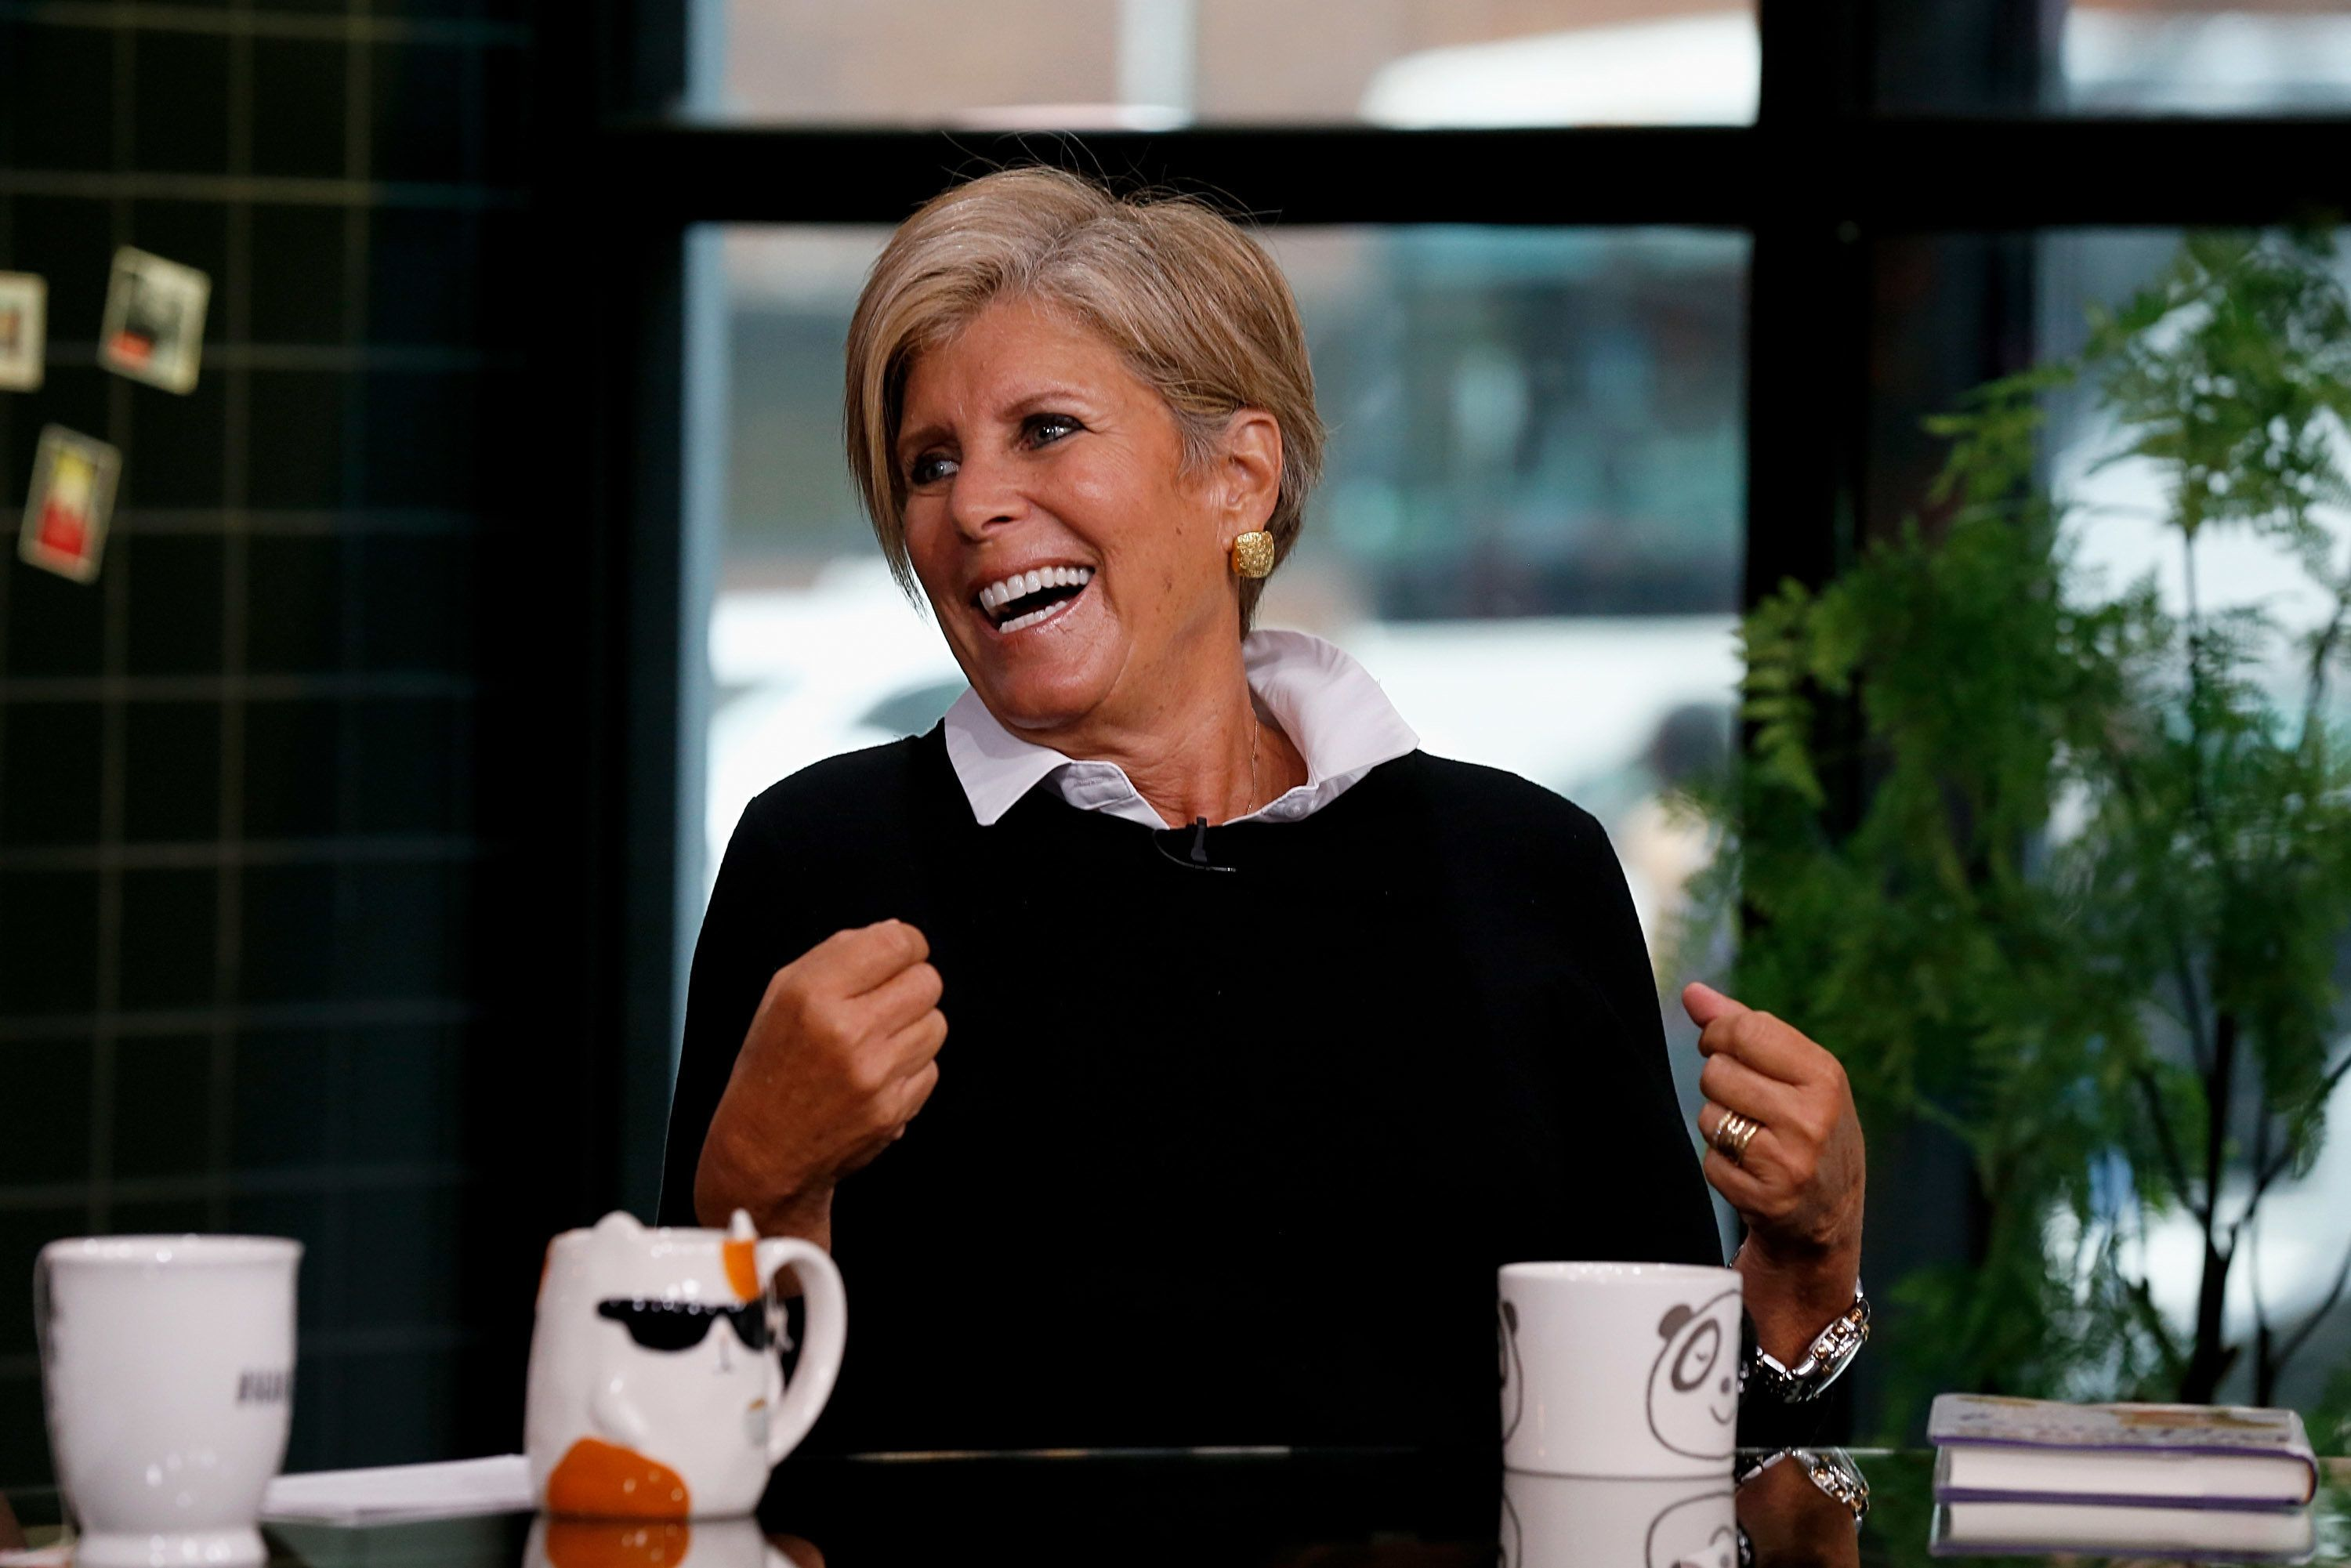 Financial advice author Suze Orman has said you need as much as $10 million in savings to retire early. Others disagree.